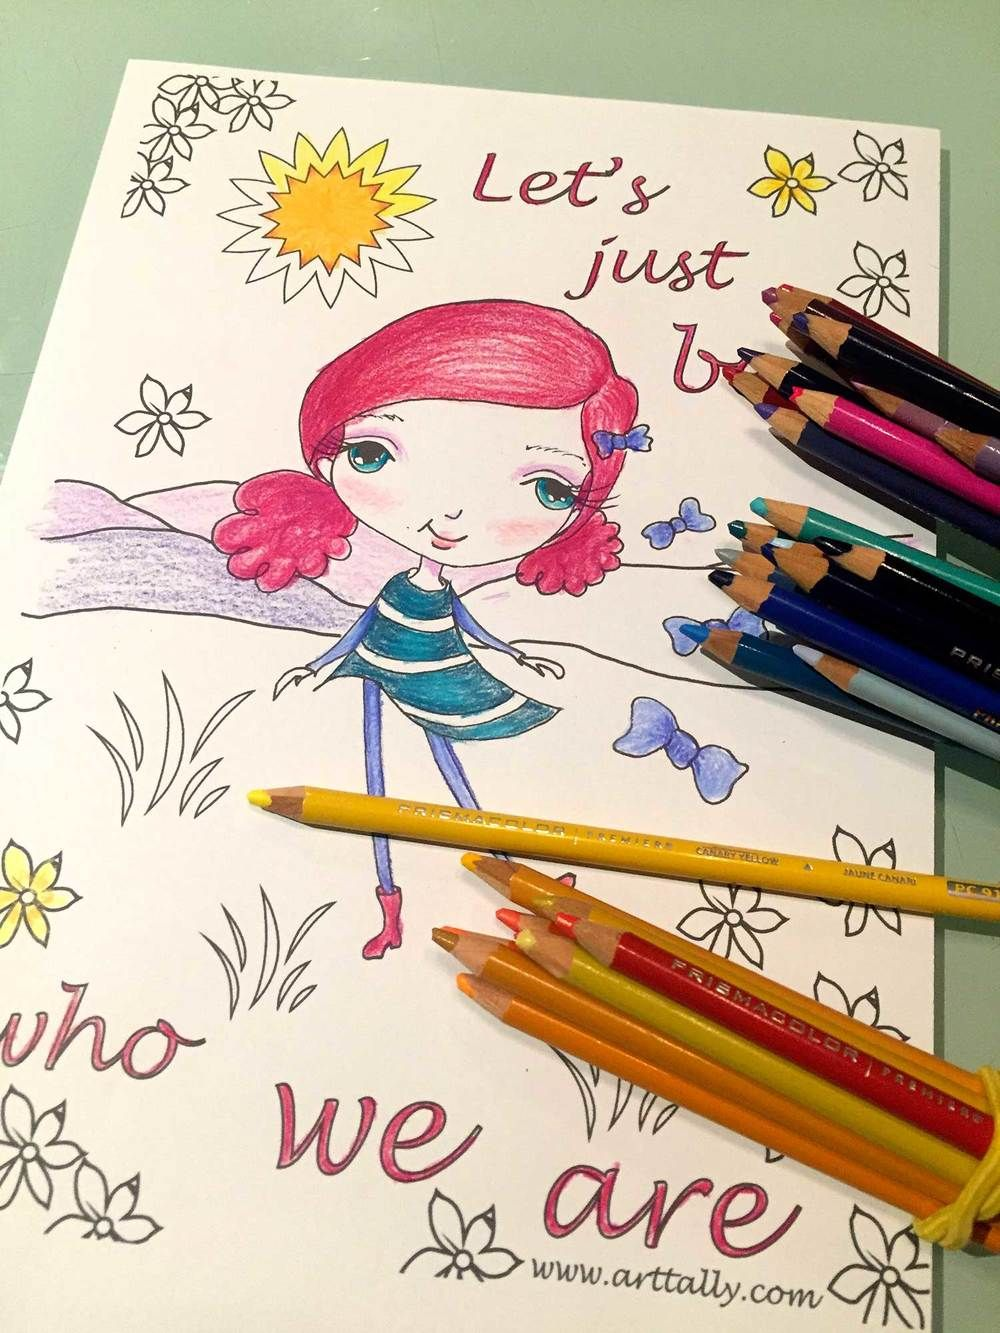 Free Colouring Sheet Whimsical Art Whimsical Girl Coloring Sheet Free Whimsical Art Free Coloring Sheets Watercolor Class